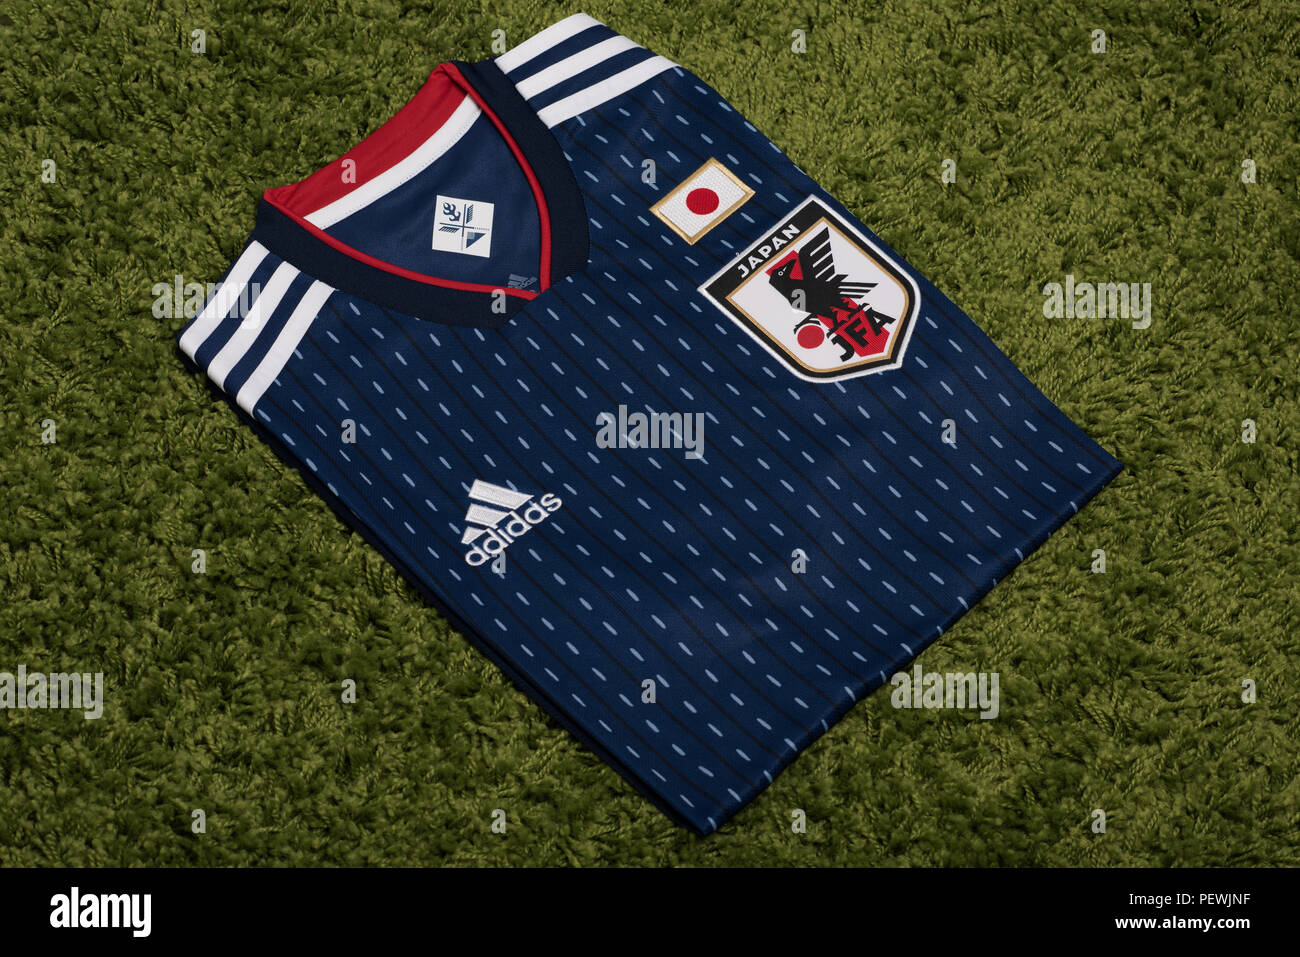 new arrival 81b86 5b846 Japanese National Football team shirt. FIFA World Cup 2018 ...